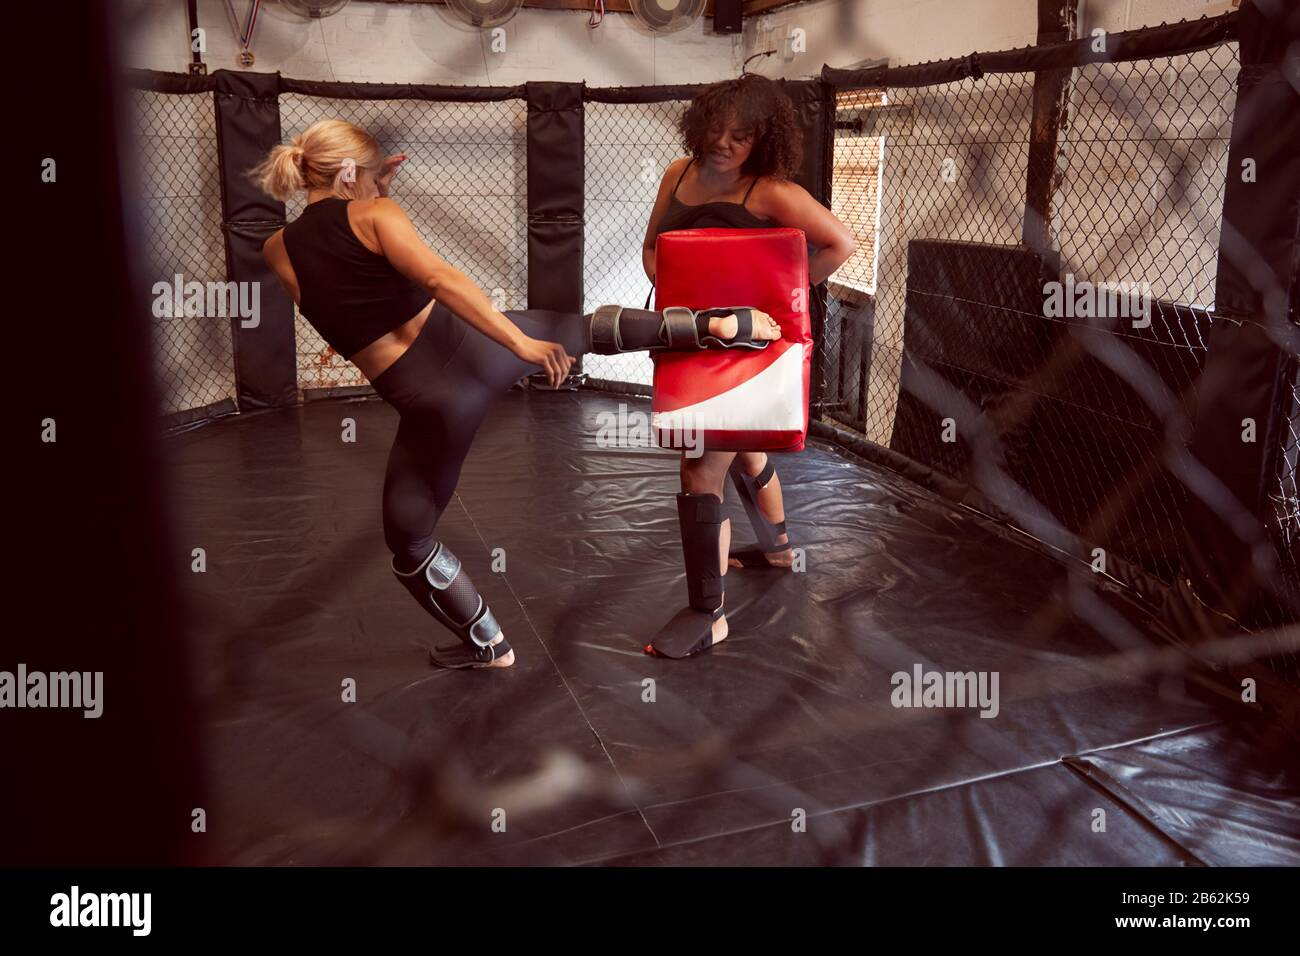 Two Female Mixed Martial Arts Fighters Kick Boxing Training In Gym Stock Photo